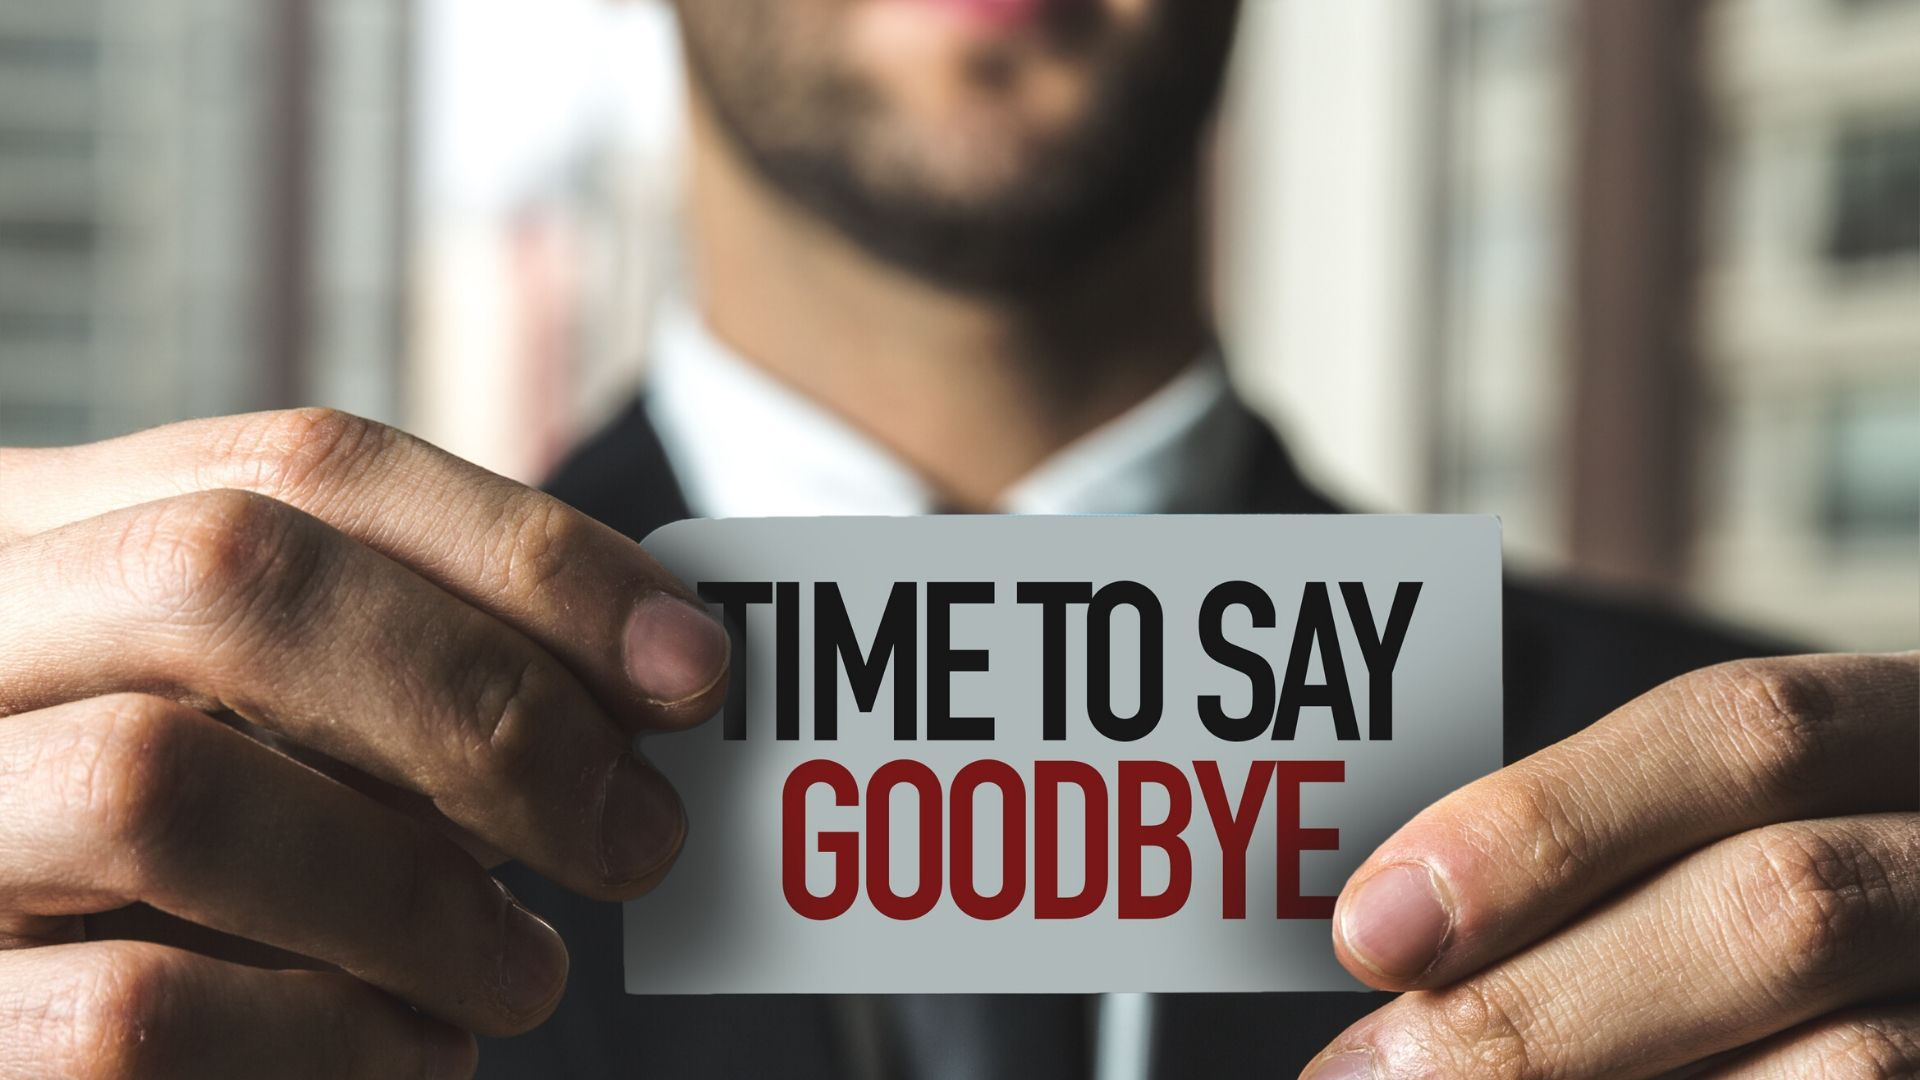 close up of man holding a sign that says 'time to say goodbye'